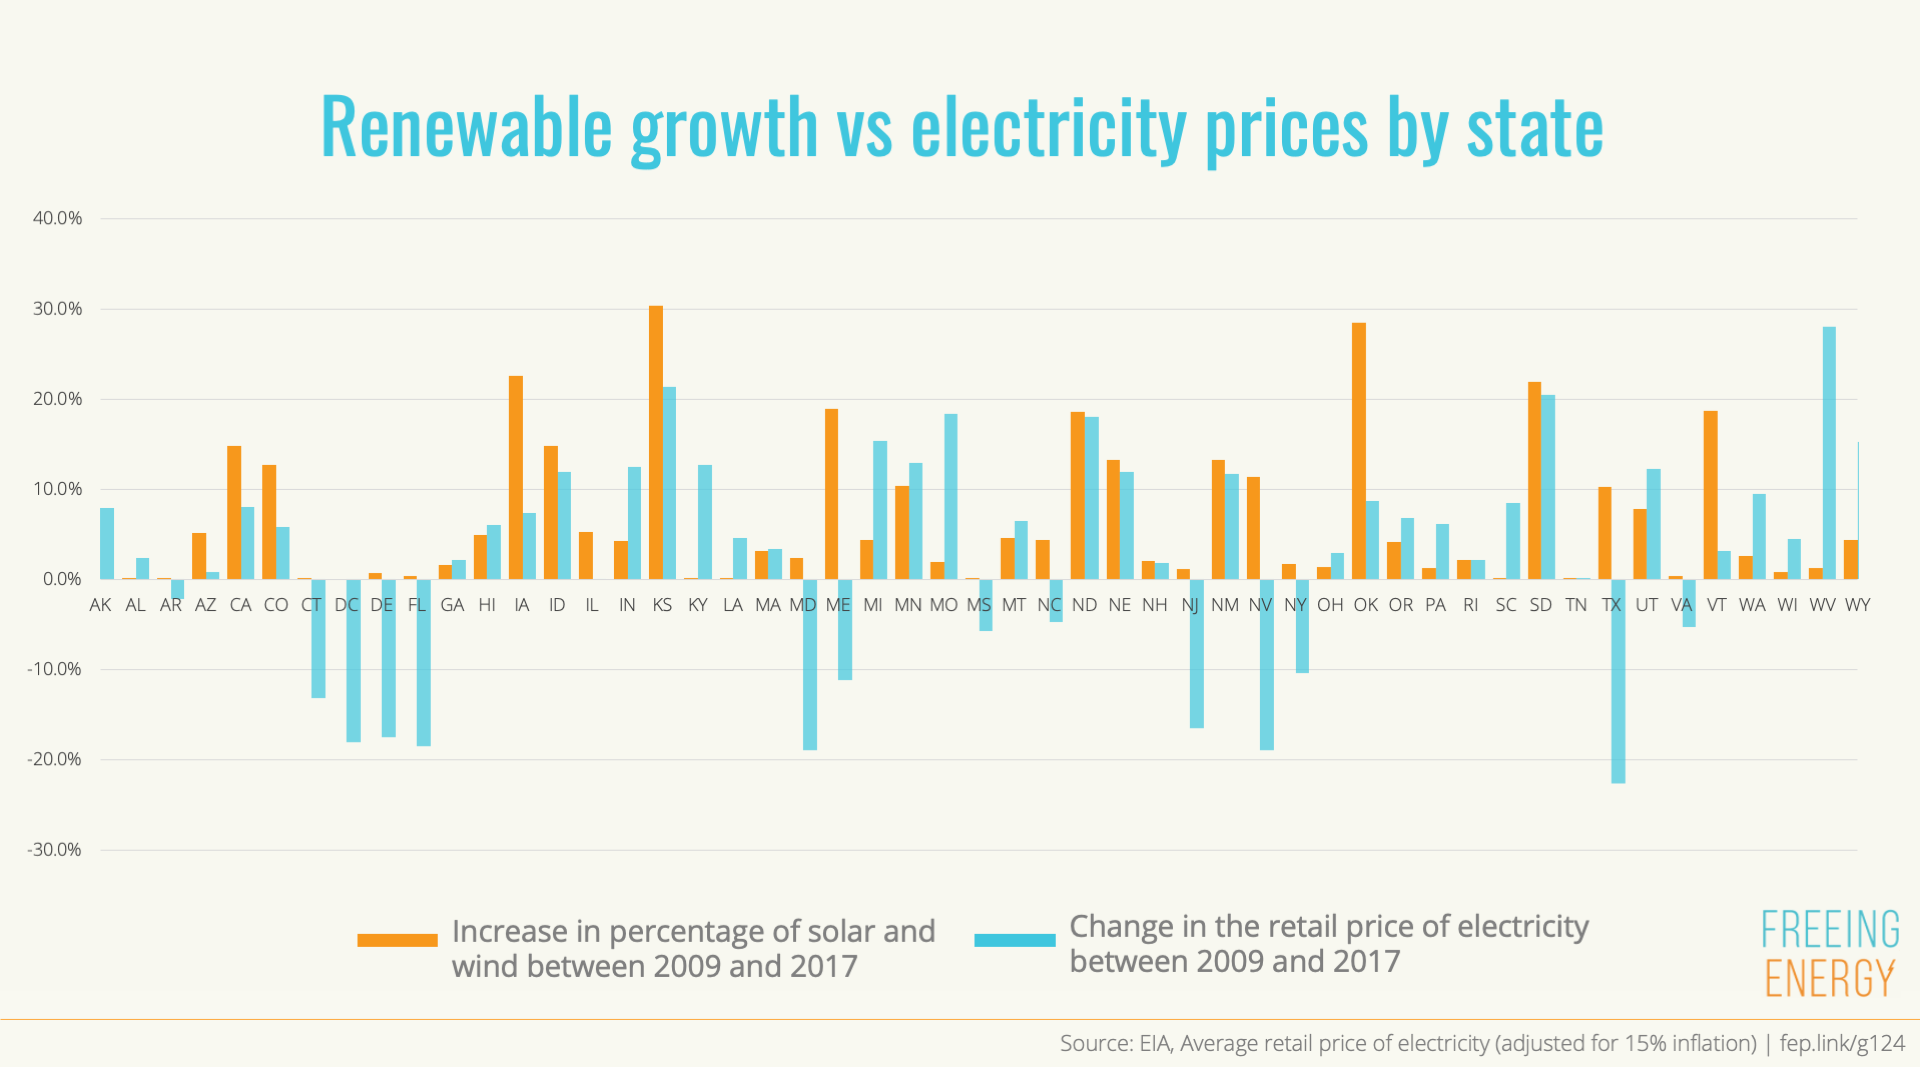 no discernable trend between renewable energy growth and state electricity prices